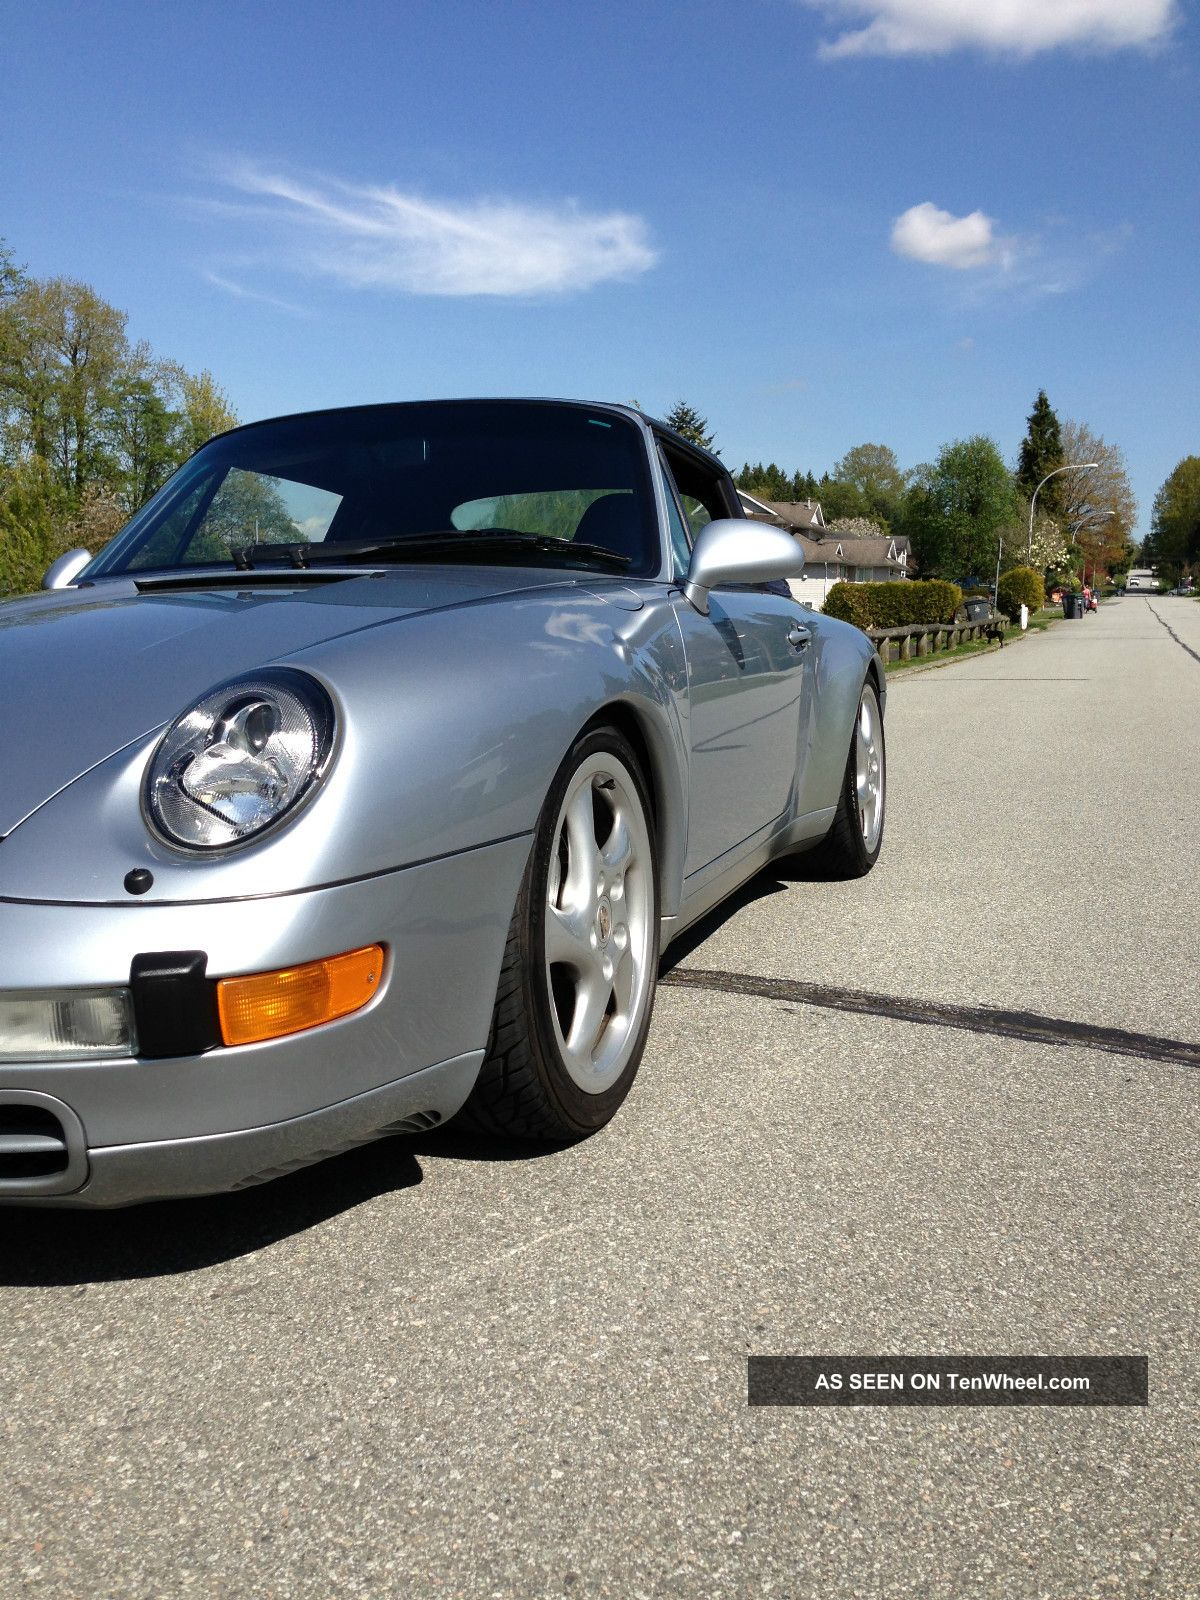 1997 Porsche 911 Carrera 4 Cabriolet 993 All Wheel Drive Turbo Twists Rare